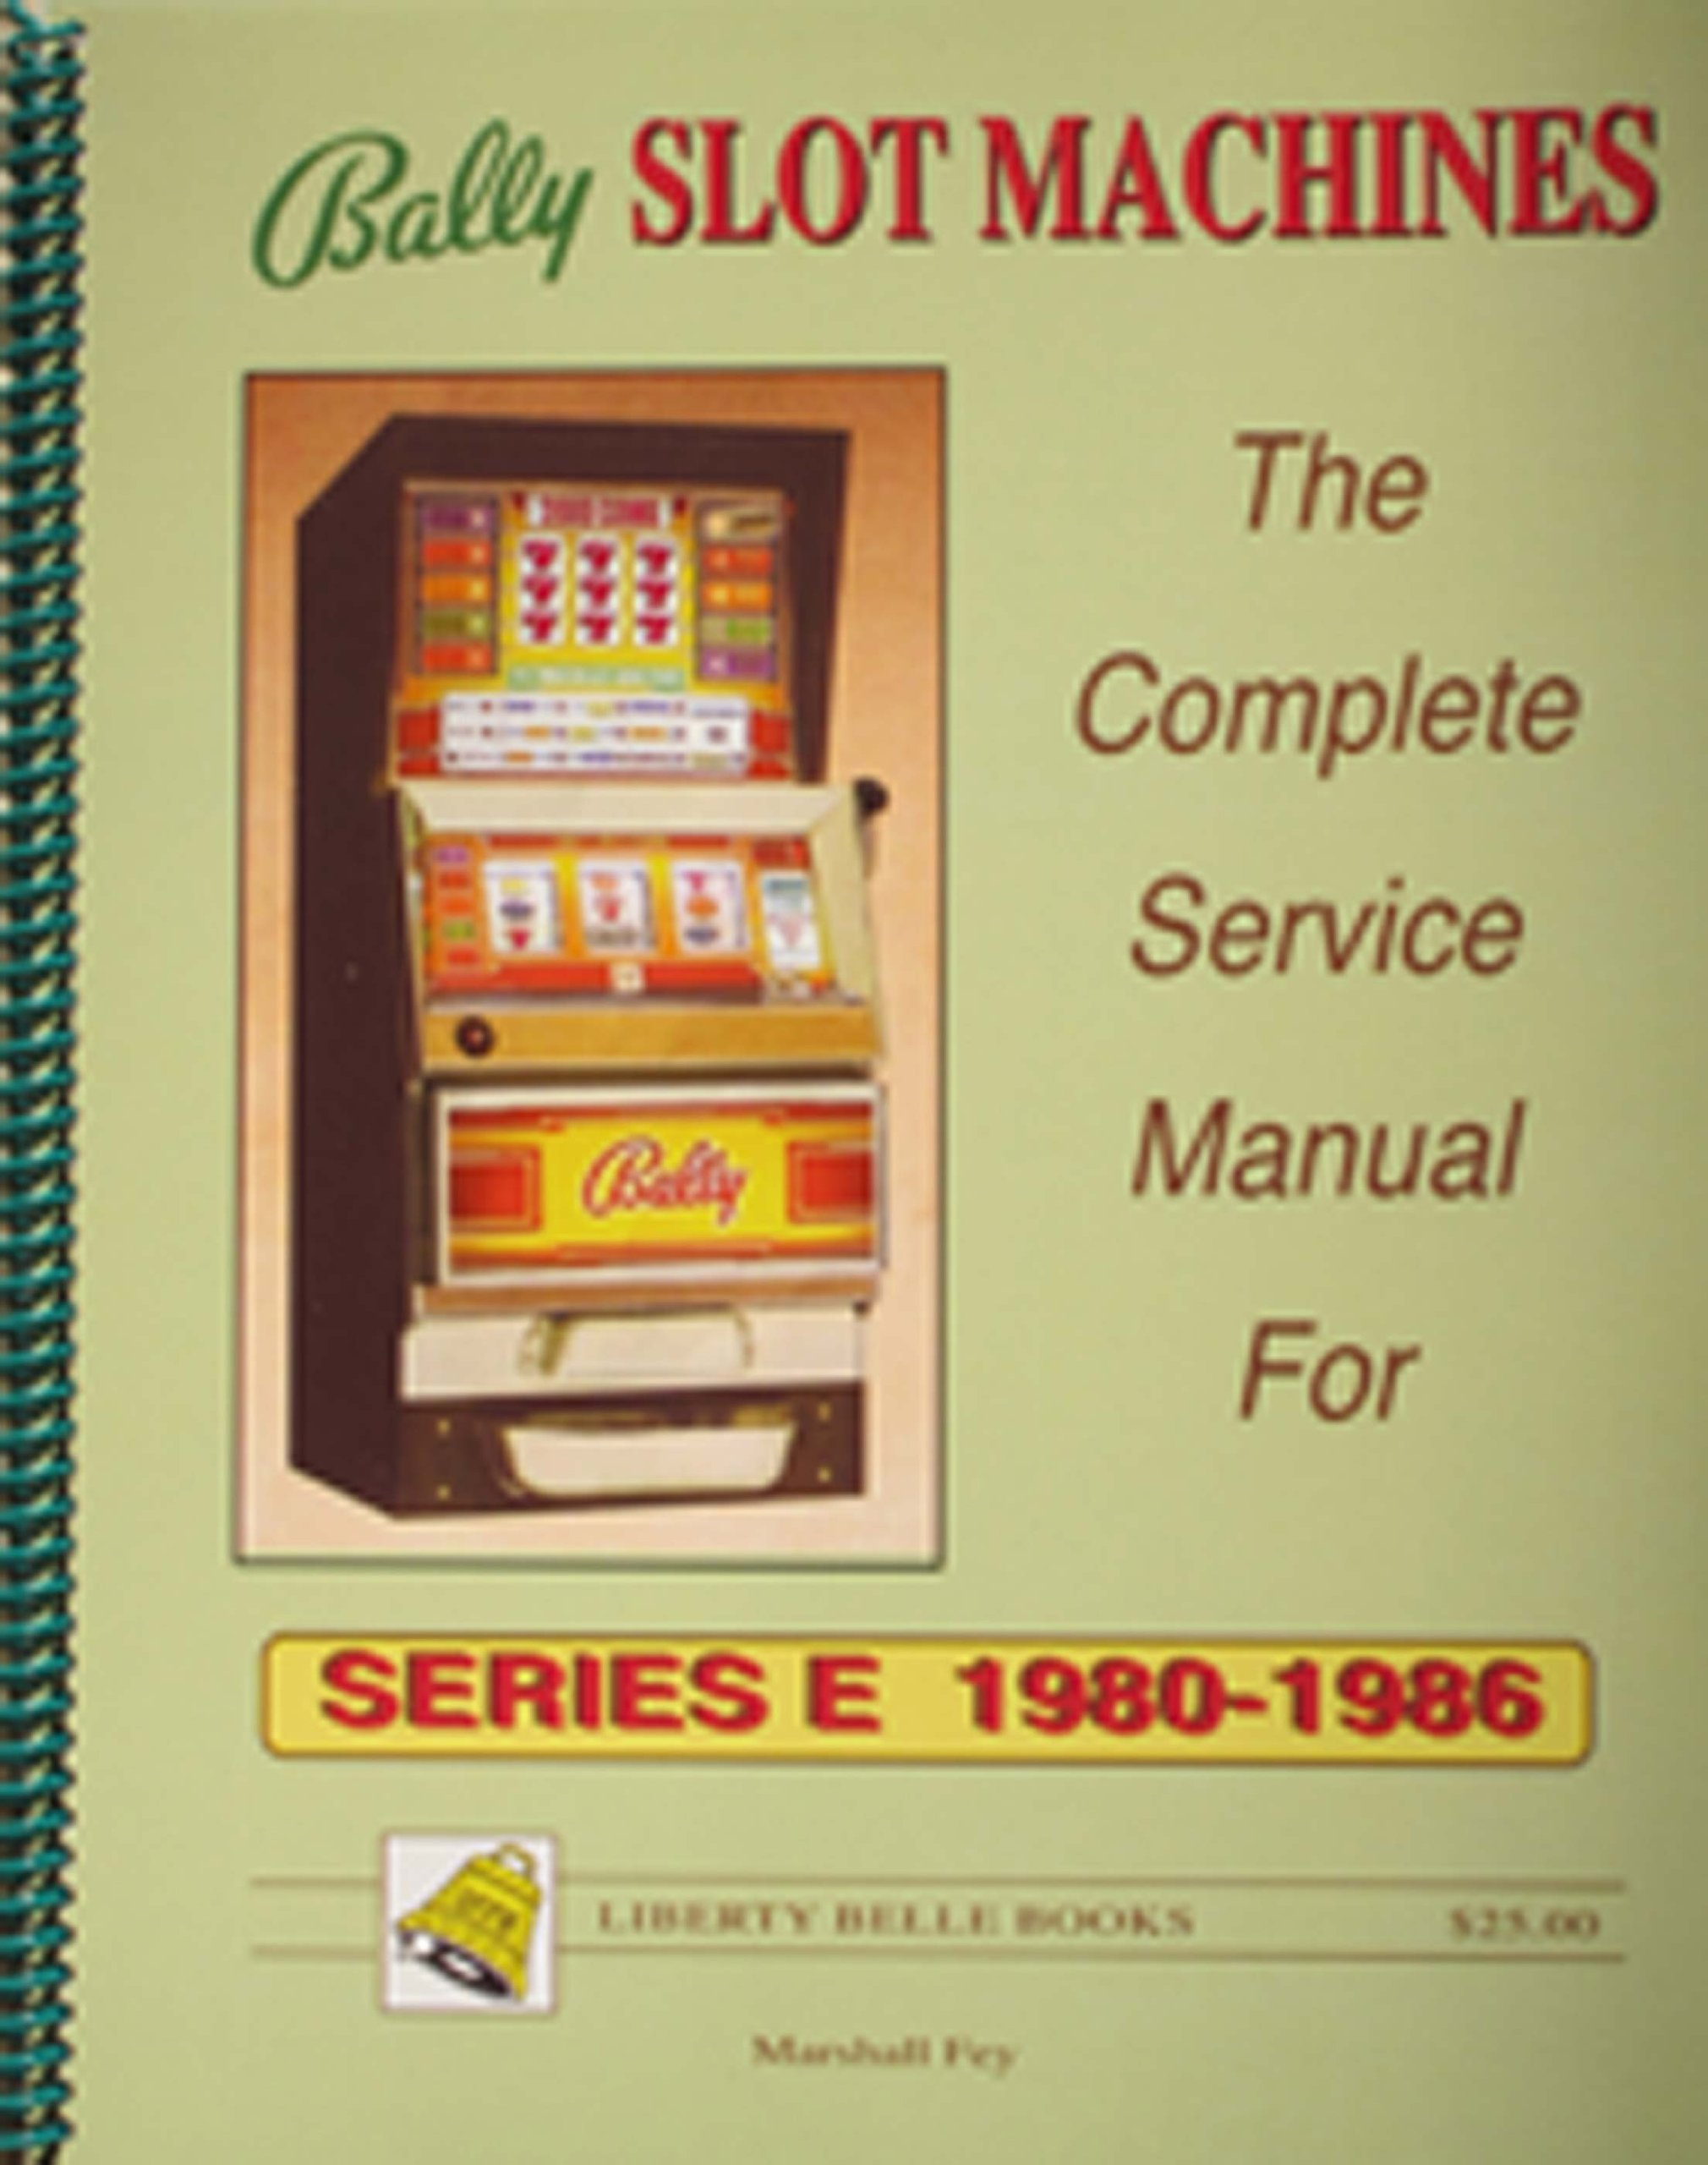 Bally slot machines repair paradise hotel and casino east peoria il